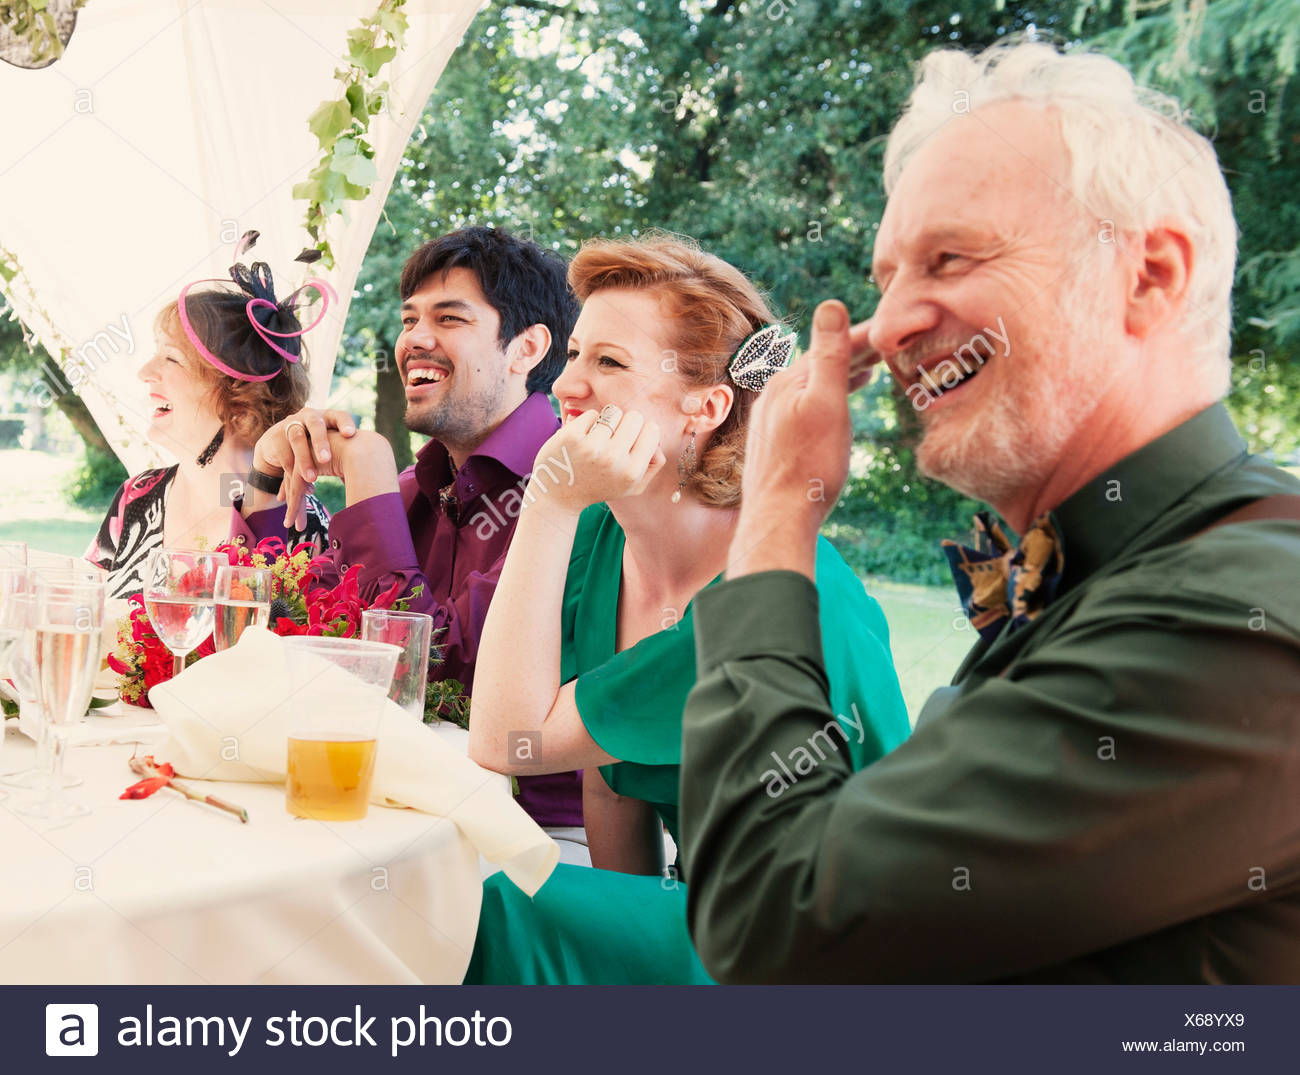 Newly married couple with parents at wedding reception - Stock Image